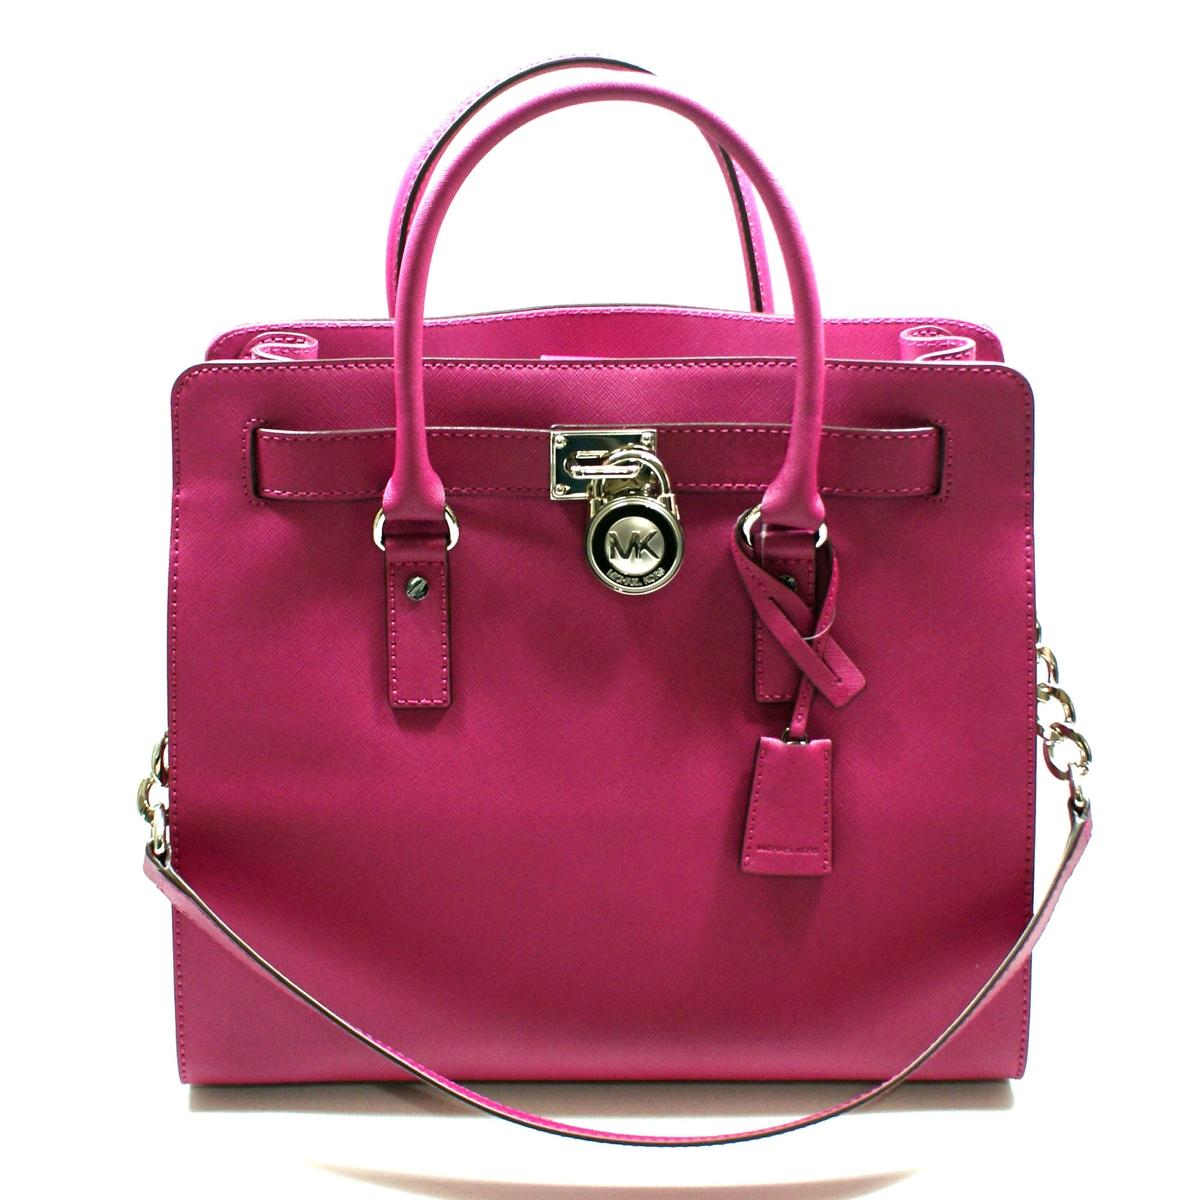 Home · Michael Kors · Hamilton Large Genuine Leather Tote Deep Pink. CLICK  THUMBNAIL TO ZOOM. Found ... 775f0c2d39ab5